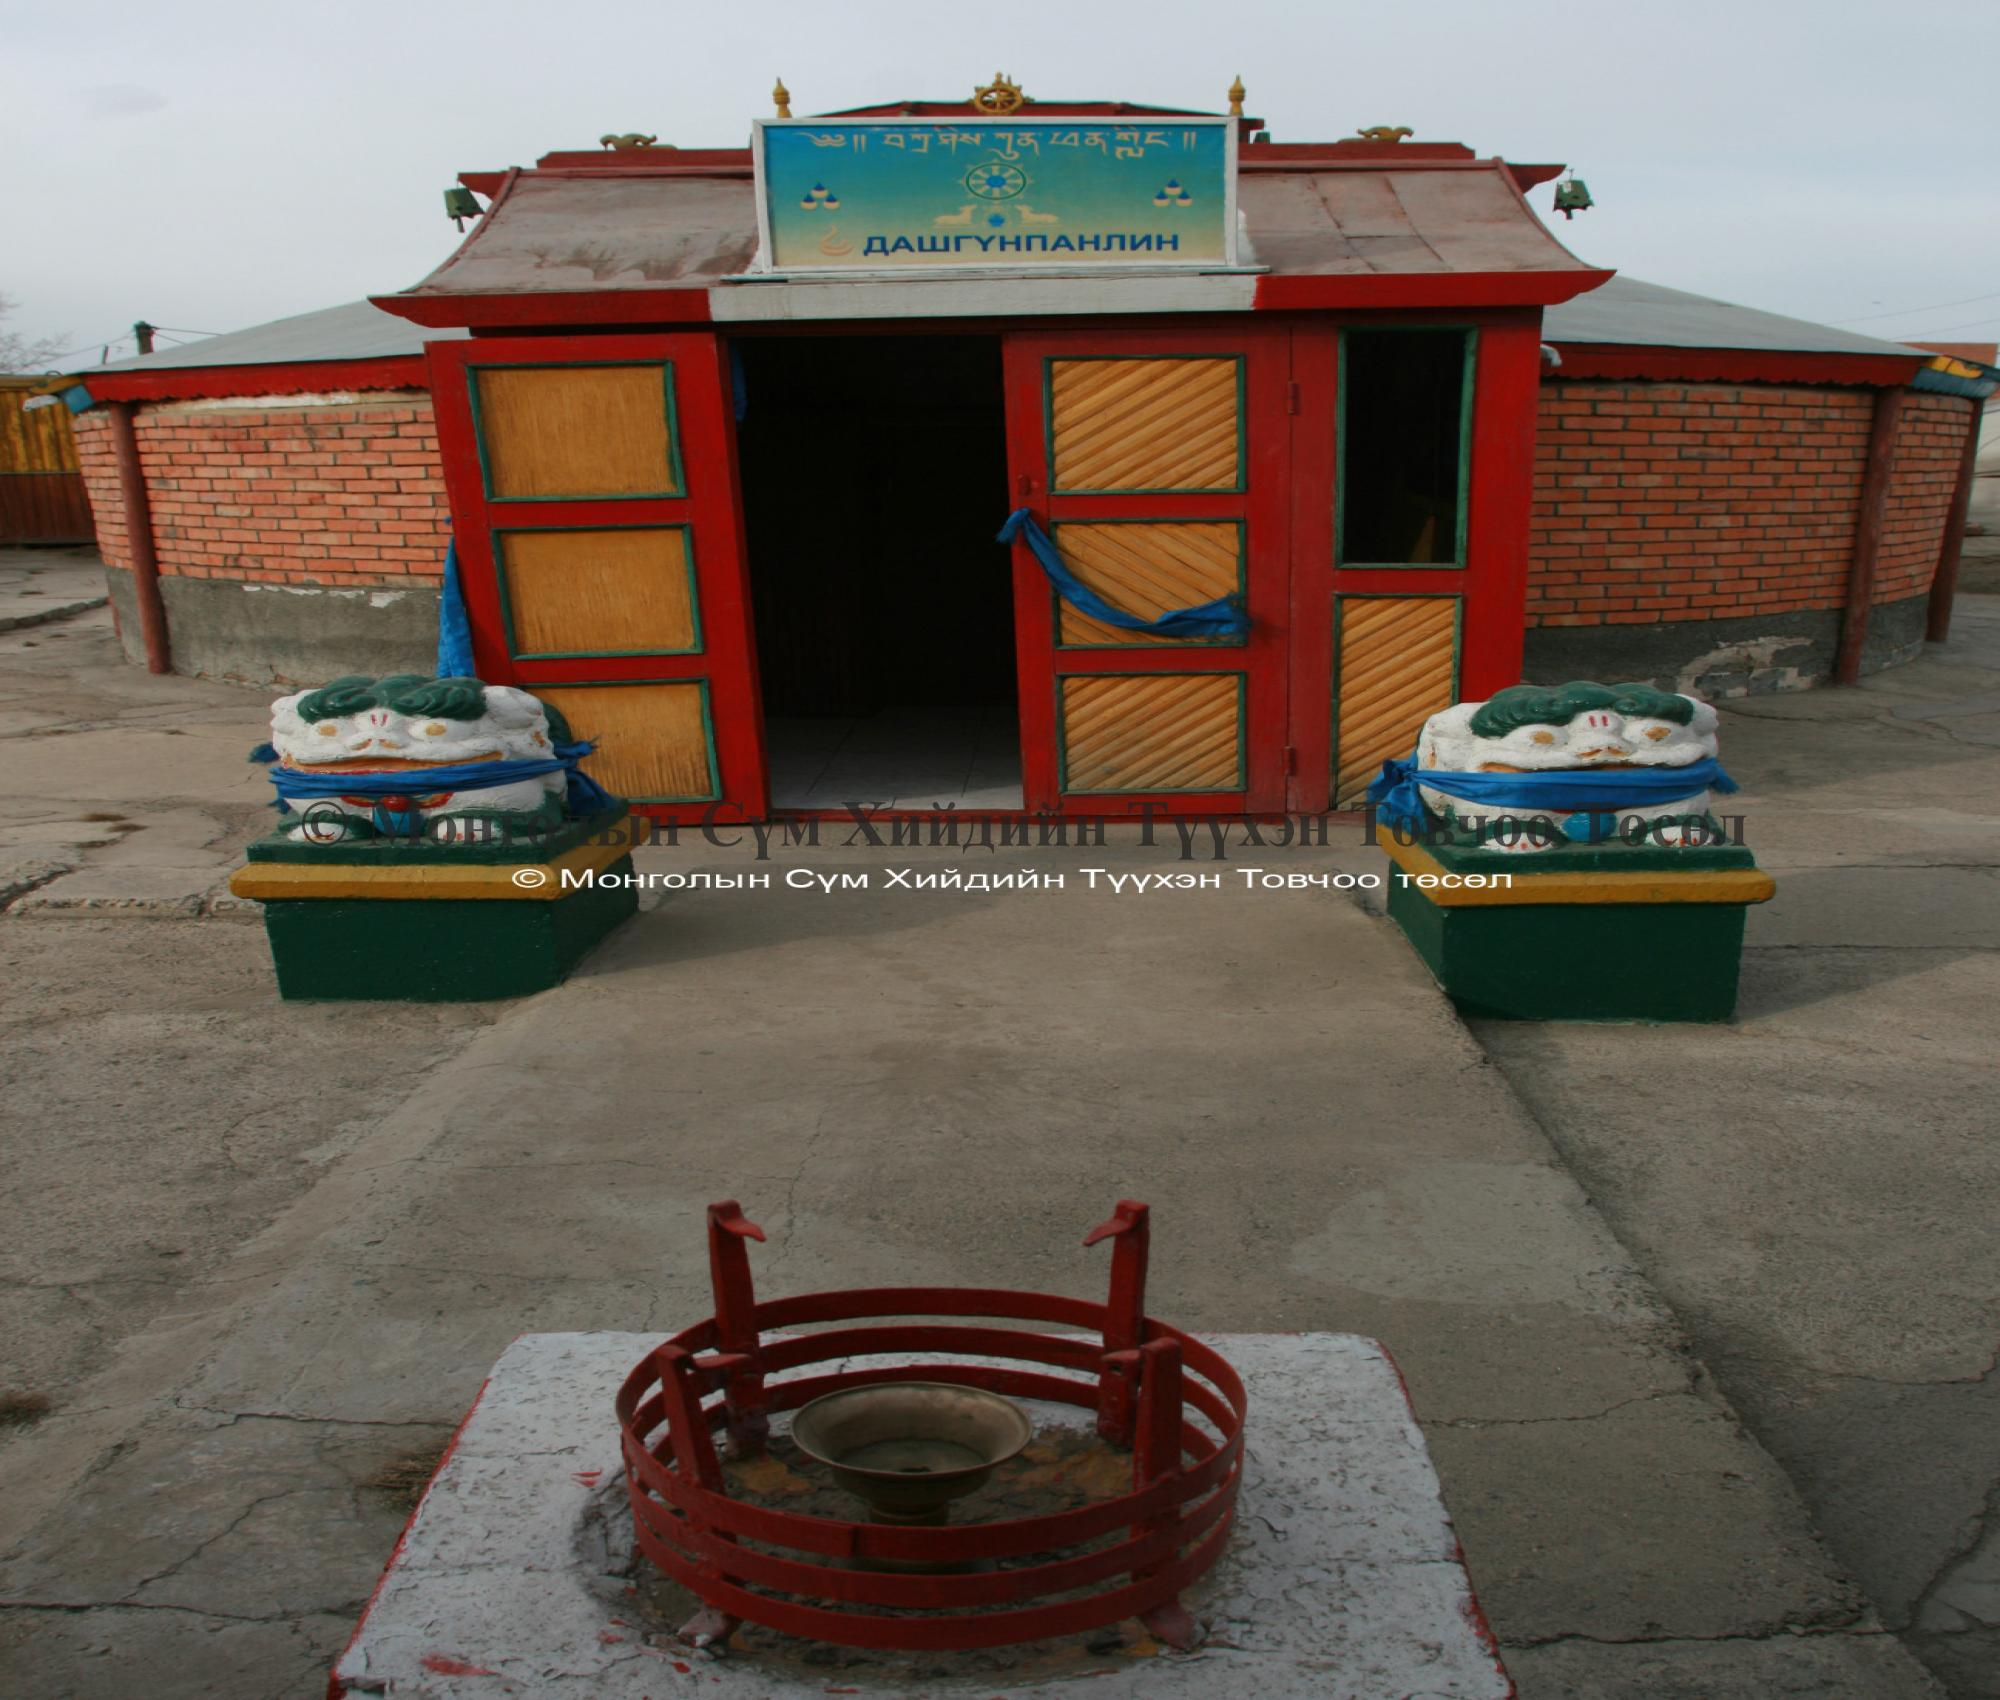 The yurt-temple entrance